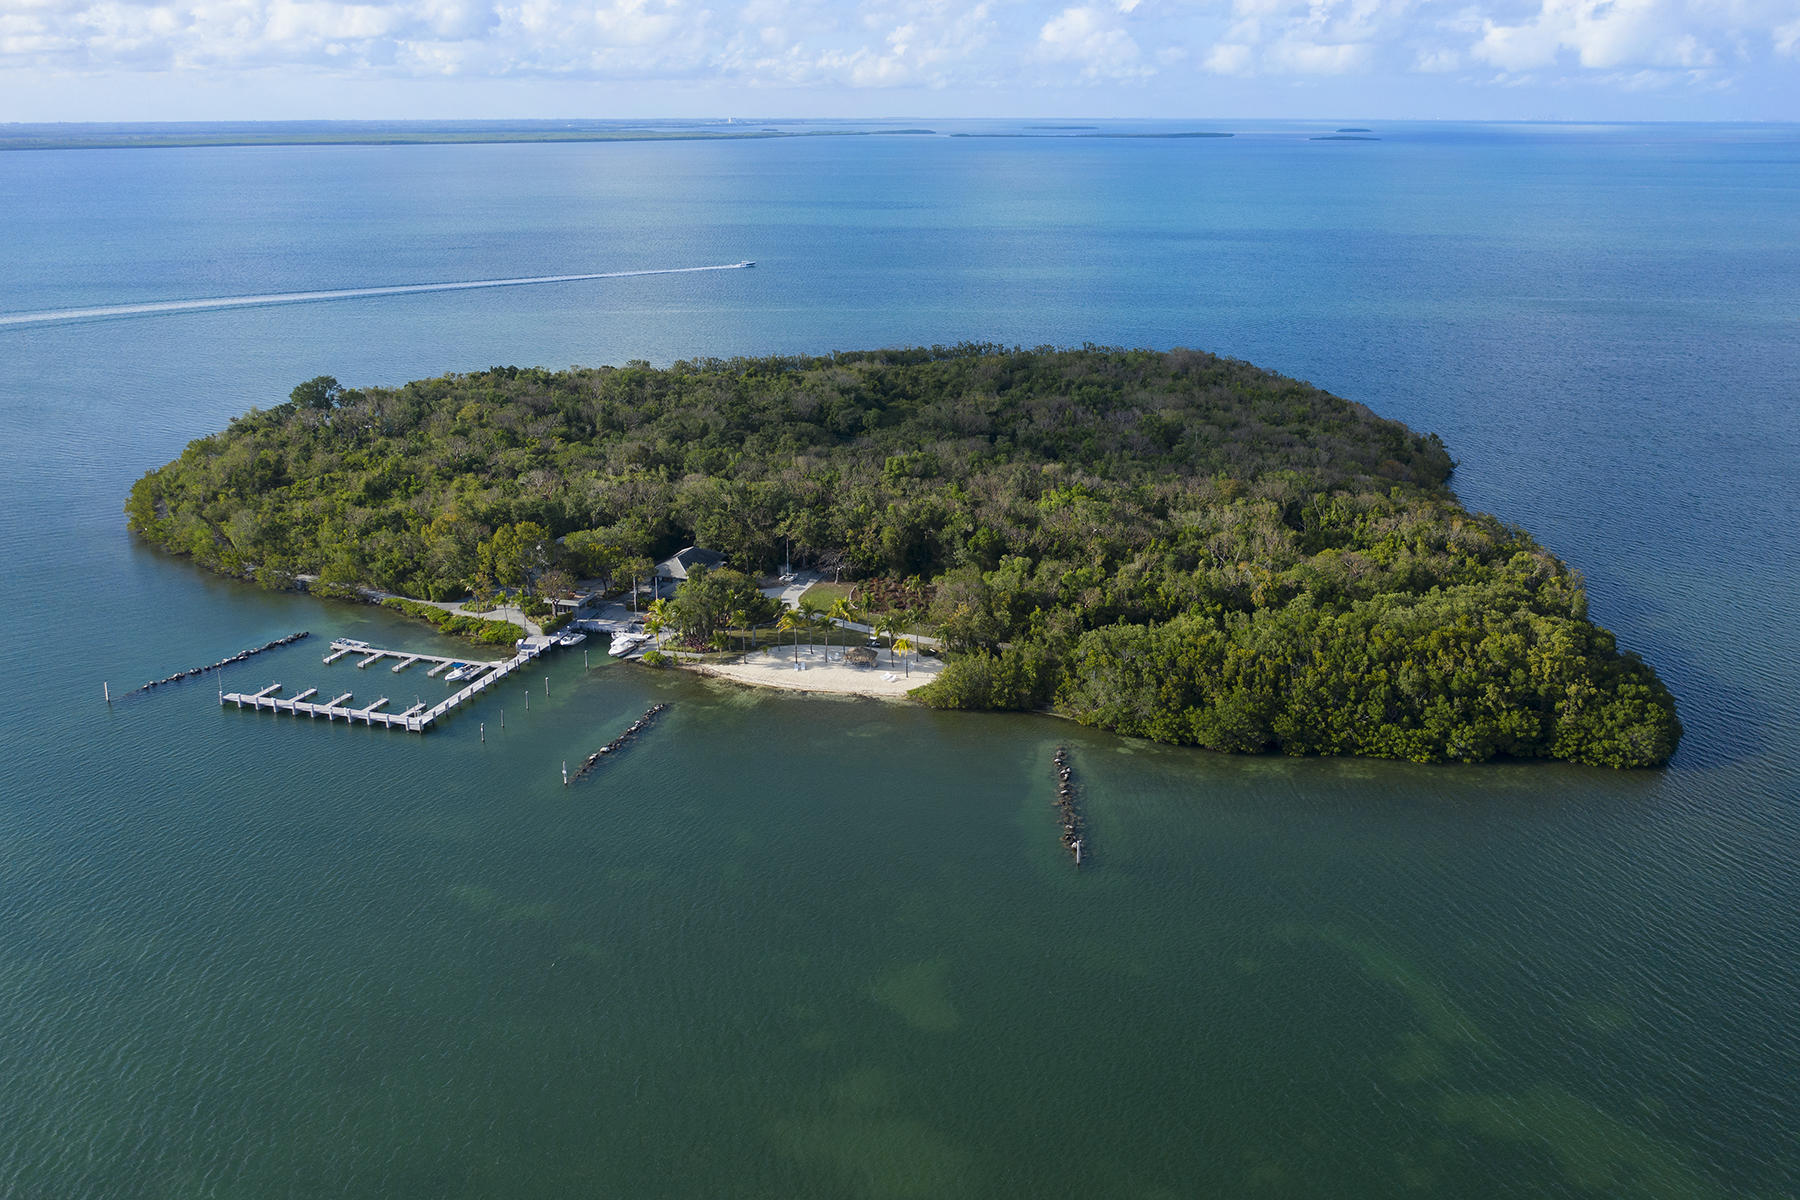 Private Island for Sale at 10 Cannon Point, Key Largo, FL 10 Cannon Point Key Largo, Florida 33037 United States